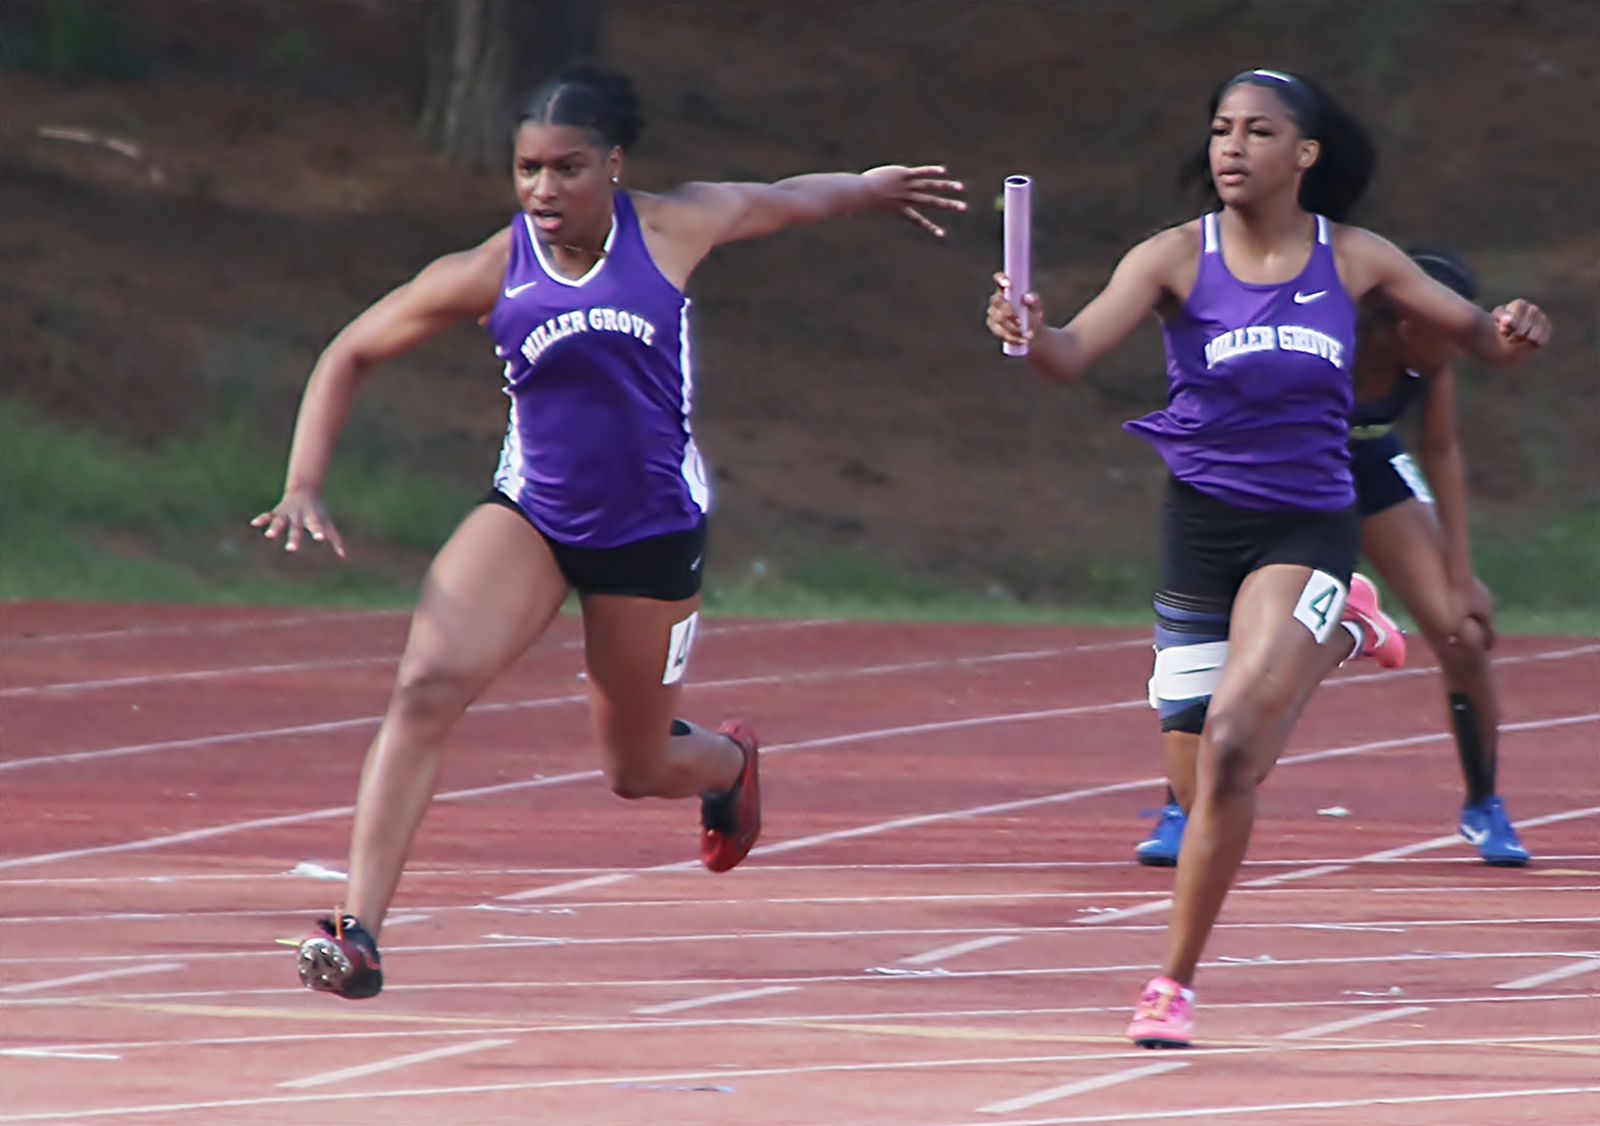 Miller Grove's Tacari Demery (left) took the baton from teammate Chance Barnes and cliched first in the 4x100 meter relay at the DCSD County Championships in March.. The pair hope to lead the Lady Wolverines to a state track championship this weekend. (Photo by Mark Brock)